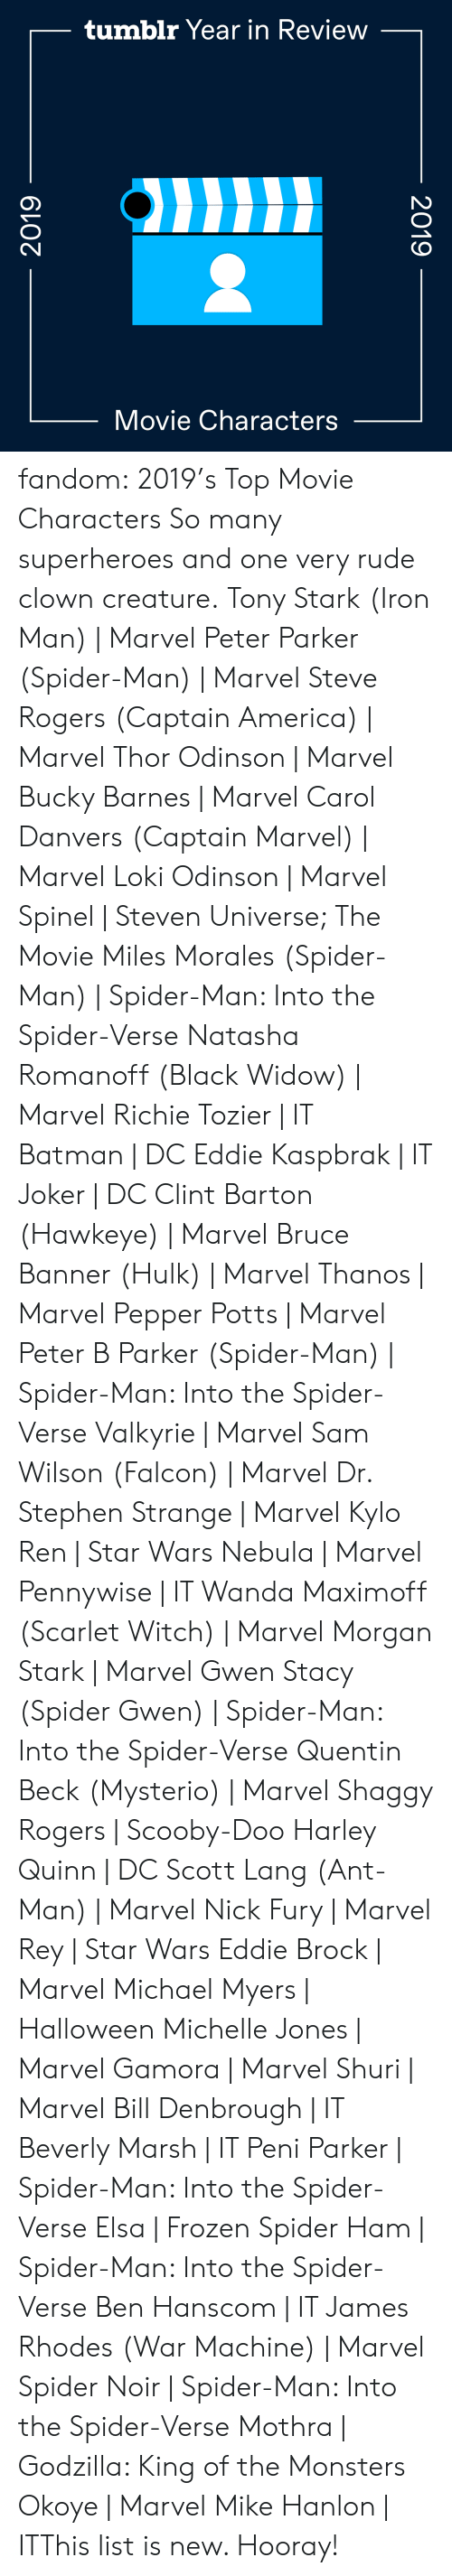 Rude: tumblr Year in Review  Movie Characters  2019  2019 fandom:  2019's Top Movie Characters  So many superheroes and one very rude clown creature.  Tony Stark (Iron Man) | Marvel  Peter Parker (Spider-Man) | Marvel  Steve Rogers (Captain America) | Marvel  Thor Odinson | Marvel  Bucky Barnes | Marvel  Carol Danvers (Captain Marvel) | Marvel  Loki Odinson | Marvel  Spinel | Steven Universe; The Movie  Miles Morales (Spider-Man) | Spider-Man: Into the Spider-Verse  Natasha Romanoff (Black Widow) | Marvel  Richie Tozier | IT  Batman | DC  Eddie Kaspbrak | IT  Joker | DC  Clint Barton (Hawkeye) | Marvel  Bruce Banner (Hulk) | Marvel  Thanos | Marvel  Pepper Potts | Marvel  Peter B Parker (Spider-Man) | Spider-Man: Into the Spider-Verse  Valkyrie | Marvel  Sam Wilson (Falcon) | Marvel  Dr. Stephen Strange | Marvel  Kylo Ren | Star Wars  Nebula | Marvel  Pennywise | IT  Wanda Maximoff (Scarlet Witch) | Marvel  Morgan Stark | Marvel  Gwen Stacy (Spider Gwen) | Spider-Man: Into the Spider-Verse  Quentin Beck (Mysterio) | Marvel  Shaggy Rogers | Scooby-Doo  Harley Quinn | DC  Scott Lang (Ant-Man) | Marvel  Nick Fury | Marvel  Rey | Star Wars  Eddie Brock | Marvel  Michael Myers | Halloween  Michelle Jones | Marvel  Gamora | Marvel  Shuri | Marvel  Bill Denbrough | IT  Beverly Marsh | IT  Peni Parker | Spider-Man: Into the Spider-Verse  Elsa | Frozen  Spider Ham | Spider-Man: Into the Spider-Verse  Ben Hanscom | IT  James Rhodes (War Machine) | Marvel  Spider Noir | Spider-Man: Into the Spider-Verse  Mothra | Godzilla: King of the Monsters  Okoye | Marvel Mike Hanlon | ITThis list is new. Hooray!